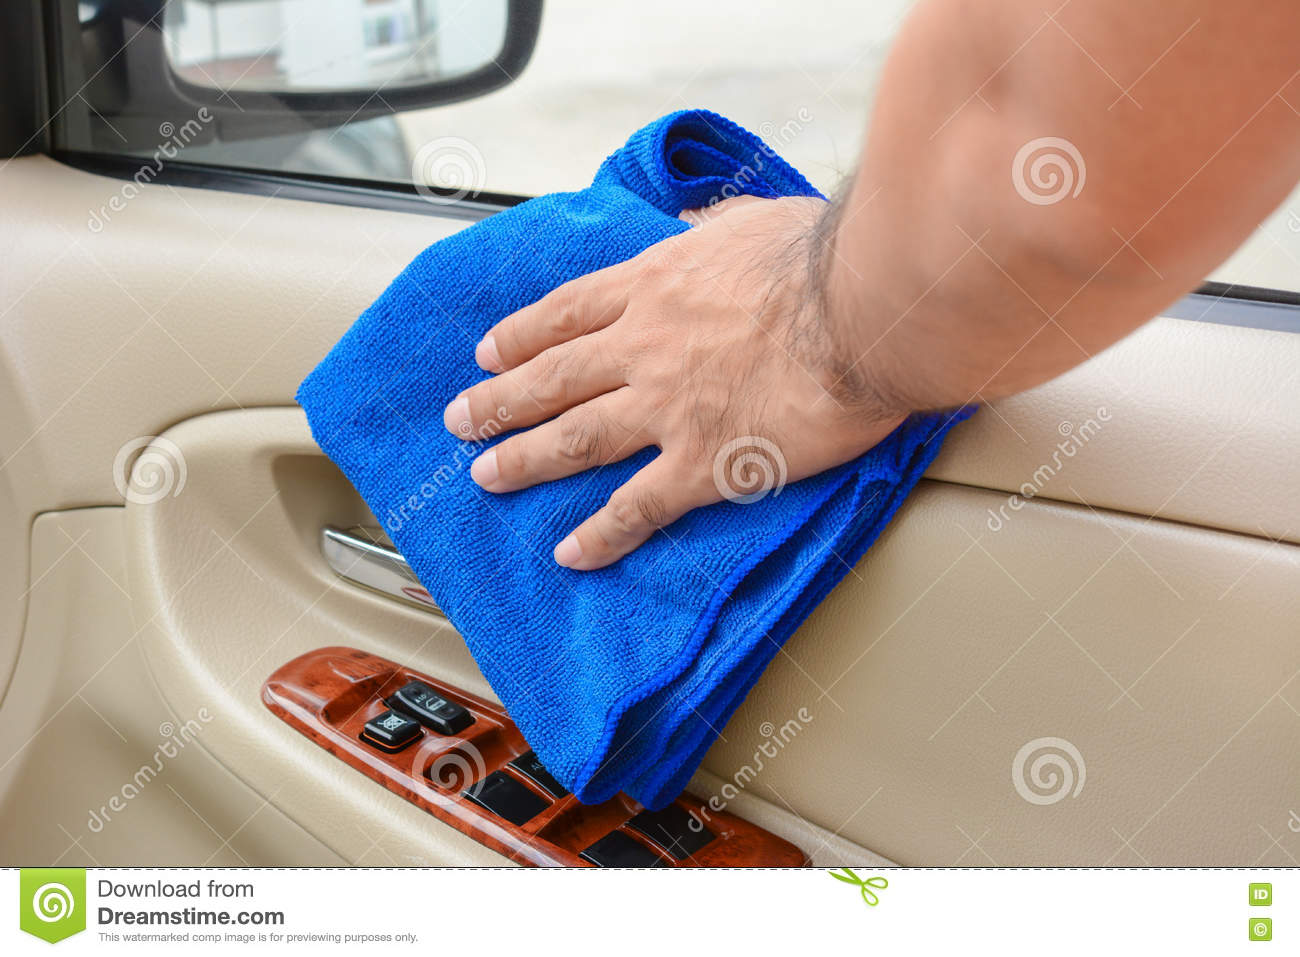 hand cleaning interior car door panel with microfiber cloth stock image image 71994895. Black Bedroom Furniture Sets. Home Design Ideas